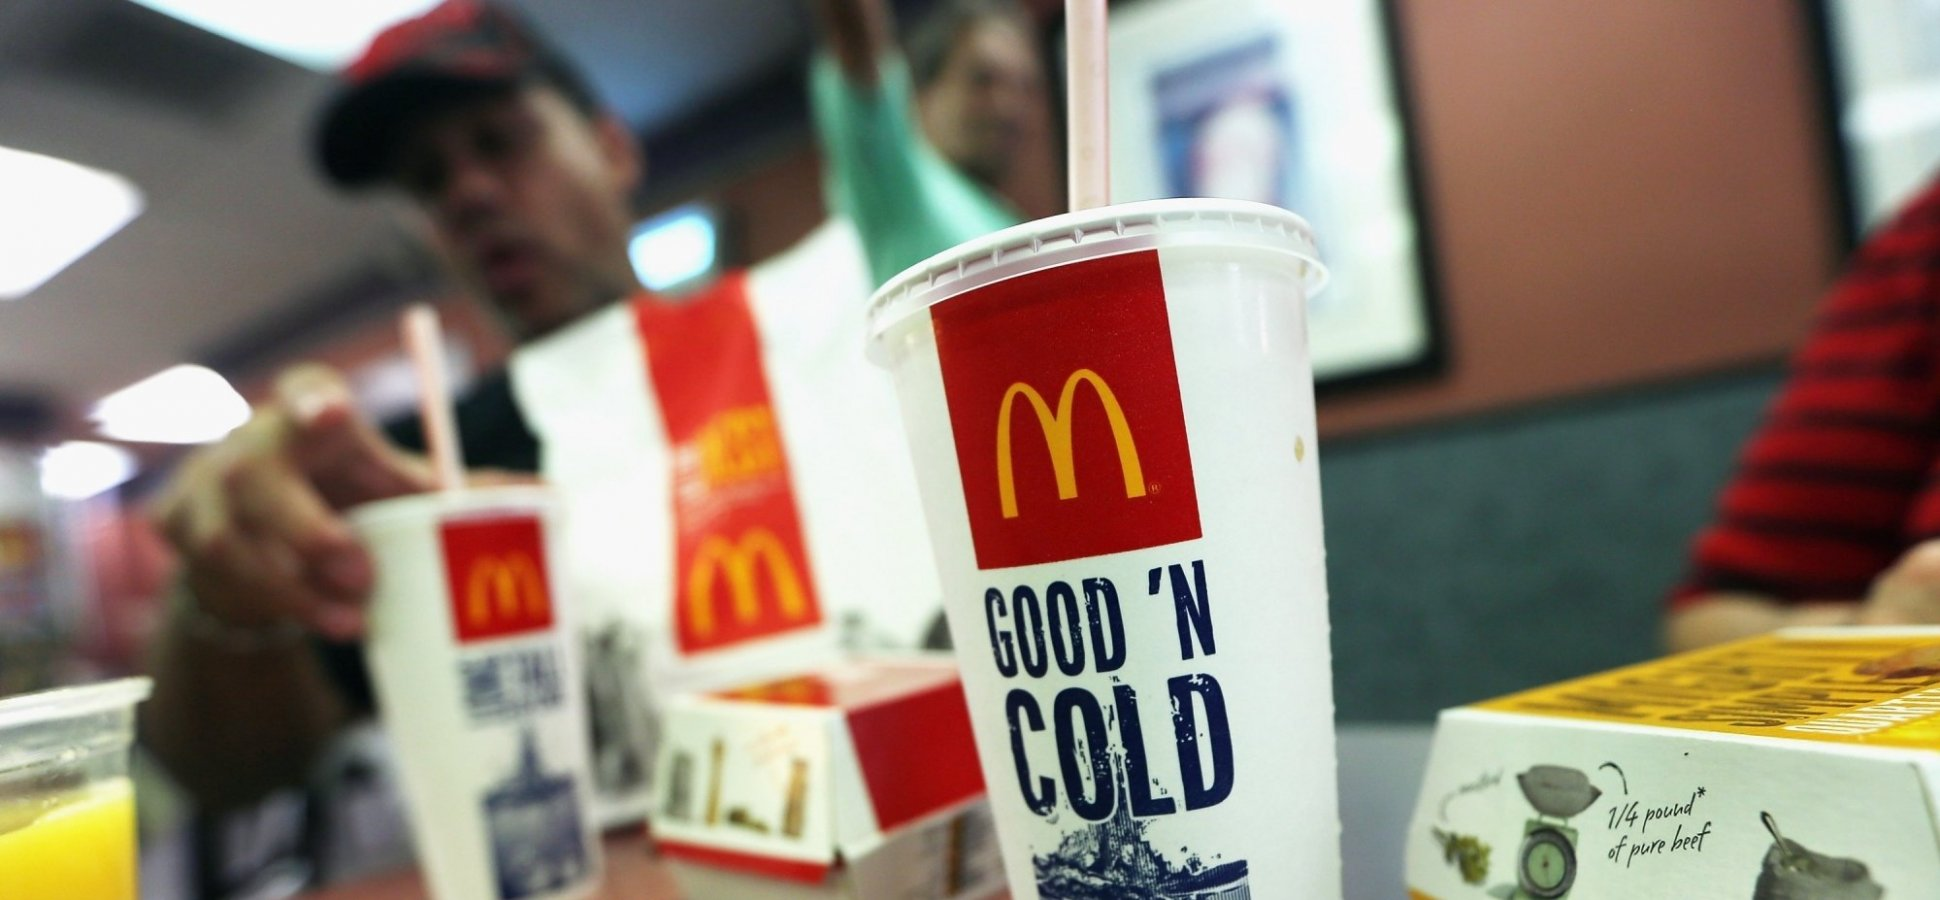 McDonald's Makes a Surprising Announcement That Puts Other Restaurants to Shame